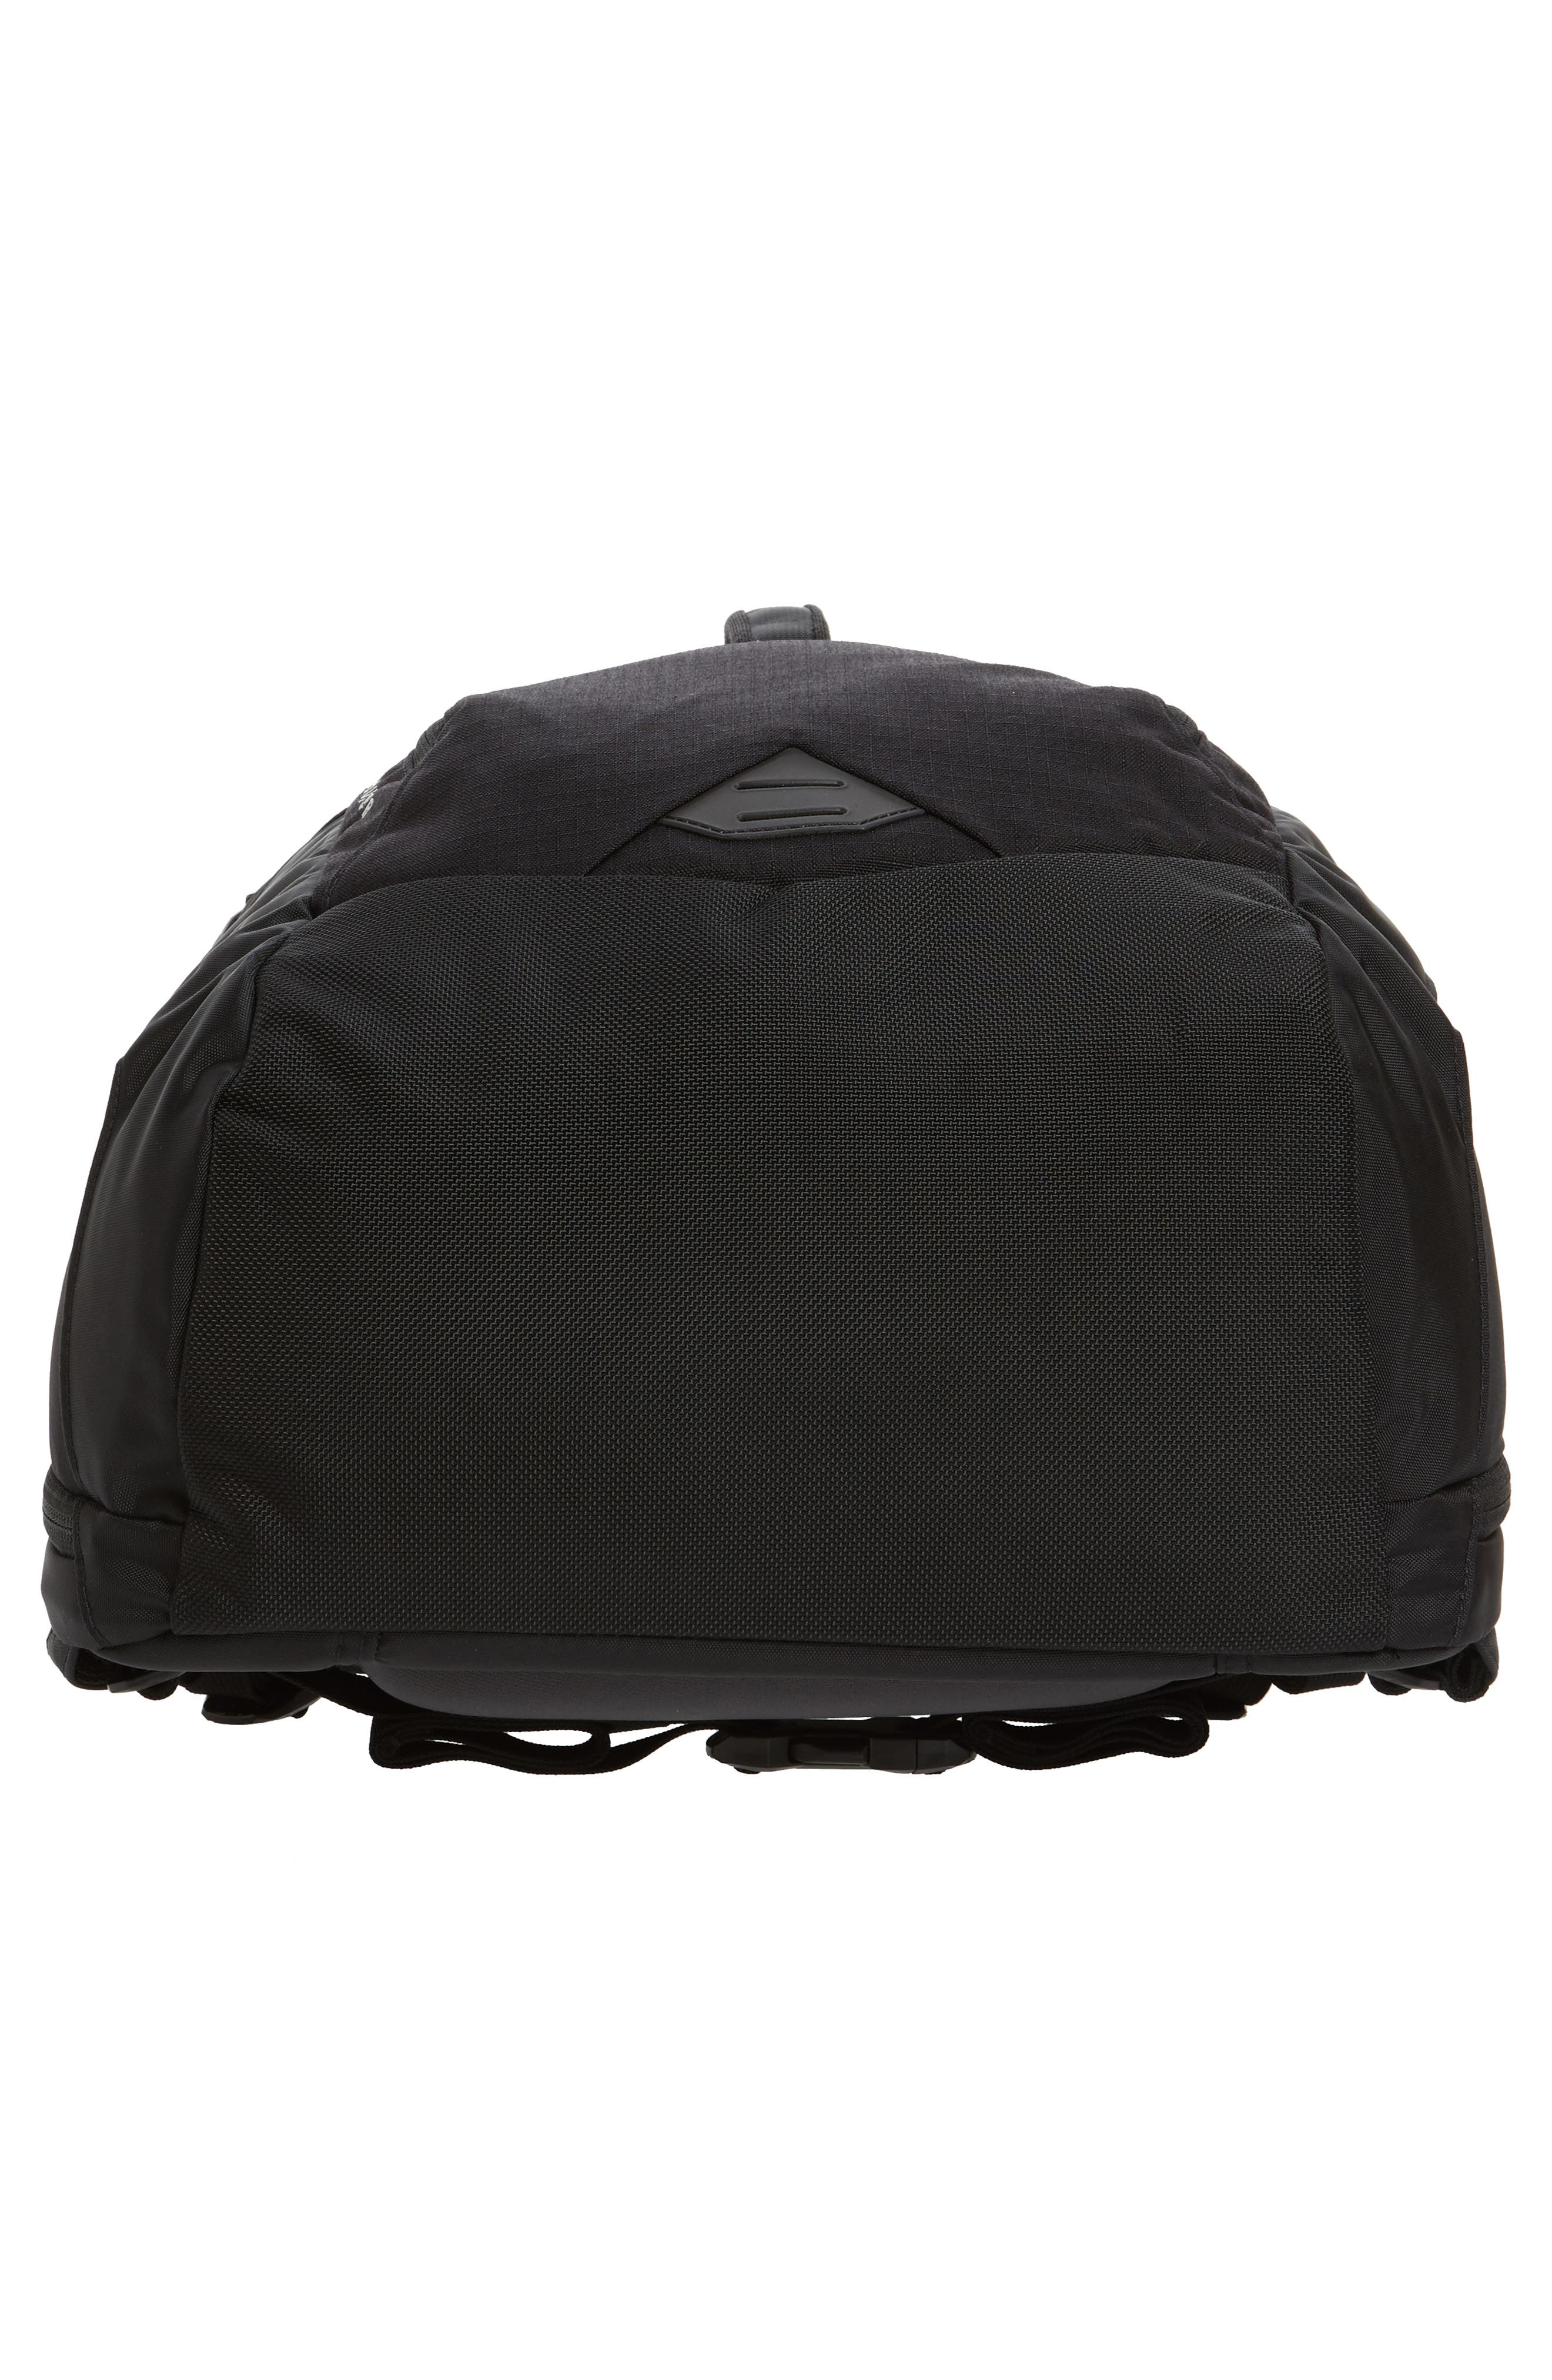 Router Backpack,                             Alternate thumbnail 6, color,                             001